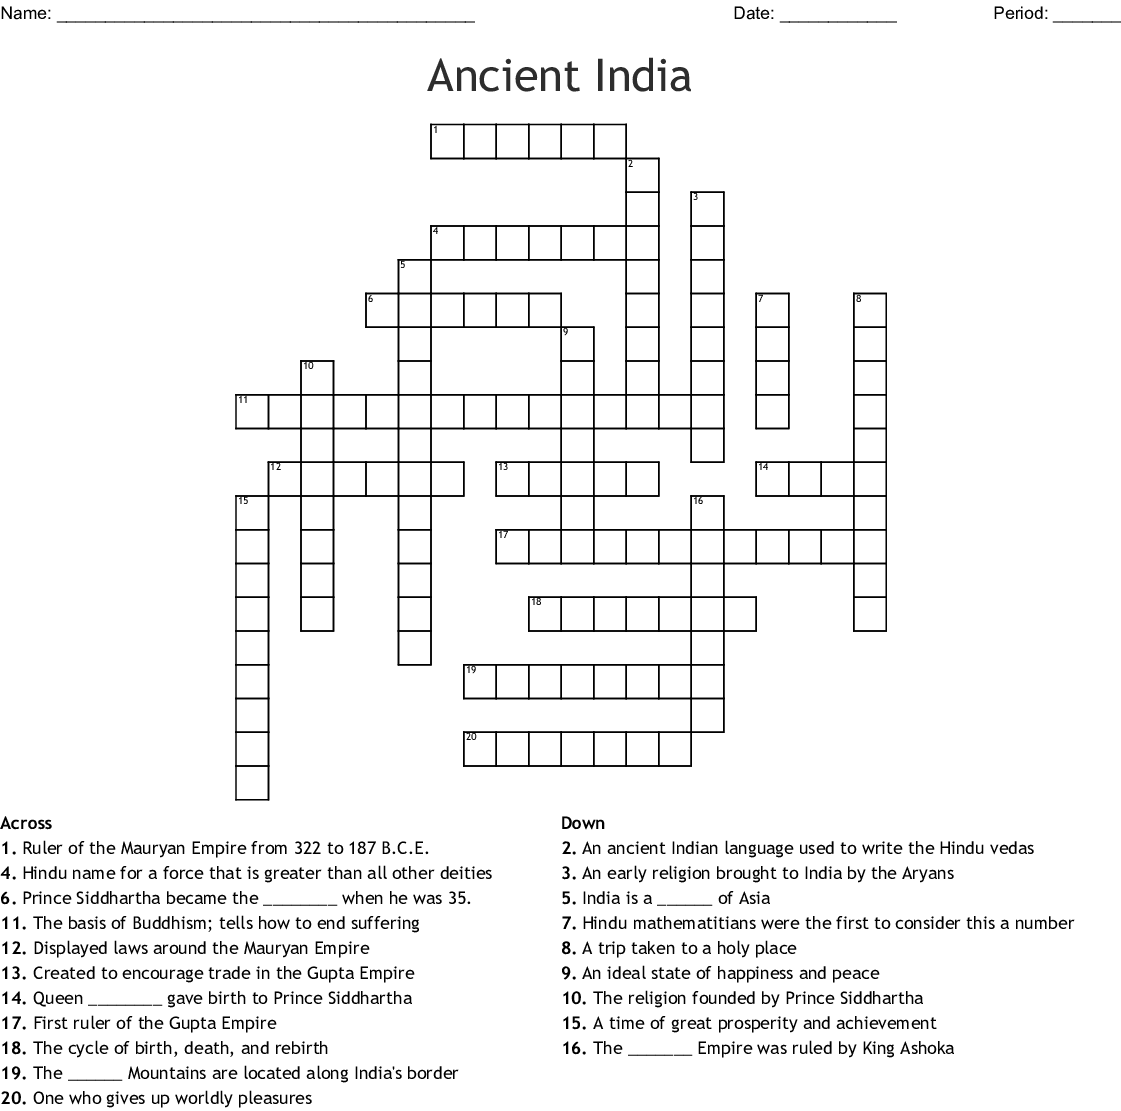 Chapter 7 Ancient India Crossword Puzzle Answer Key